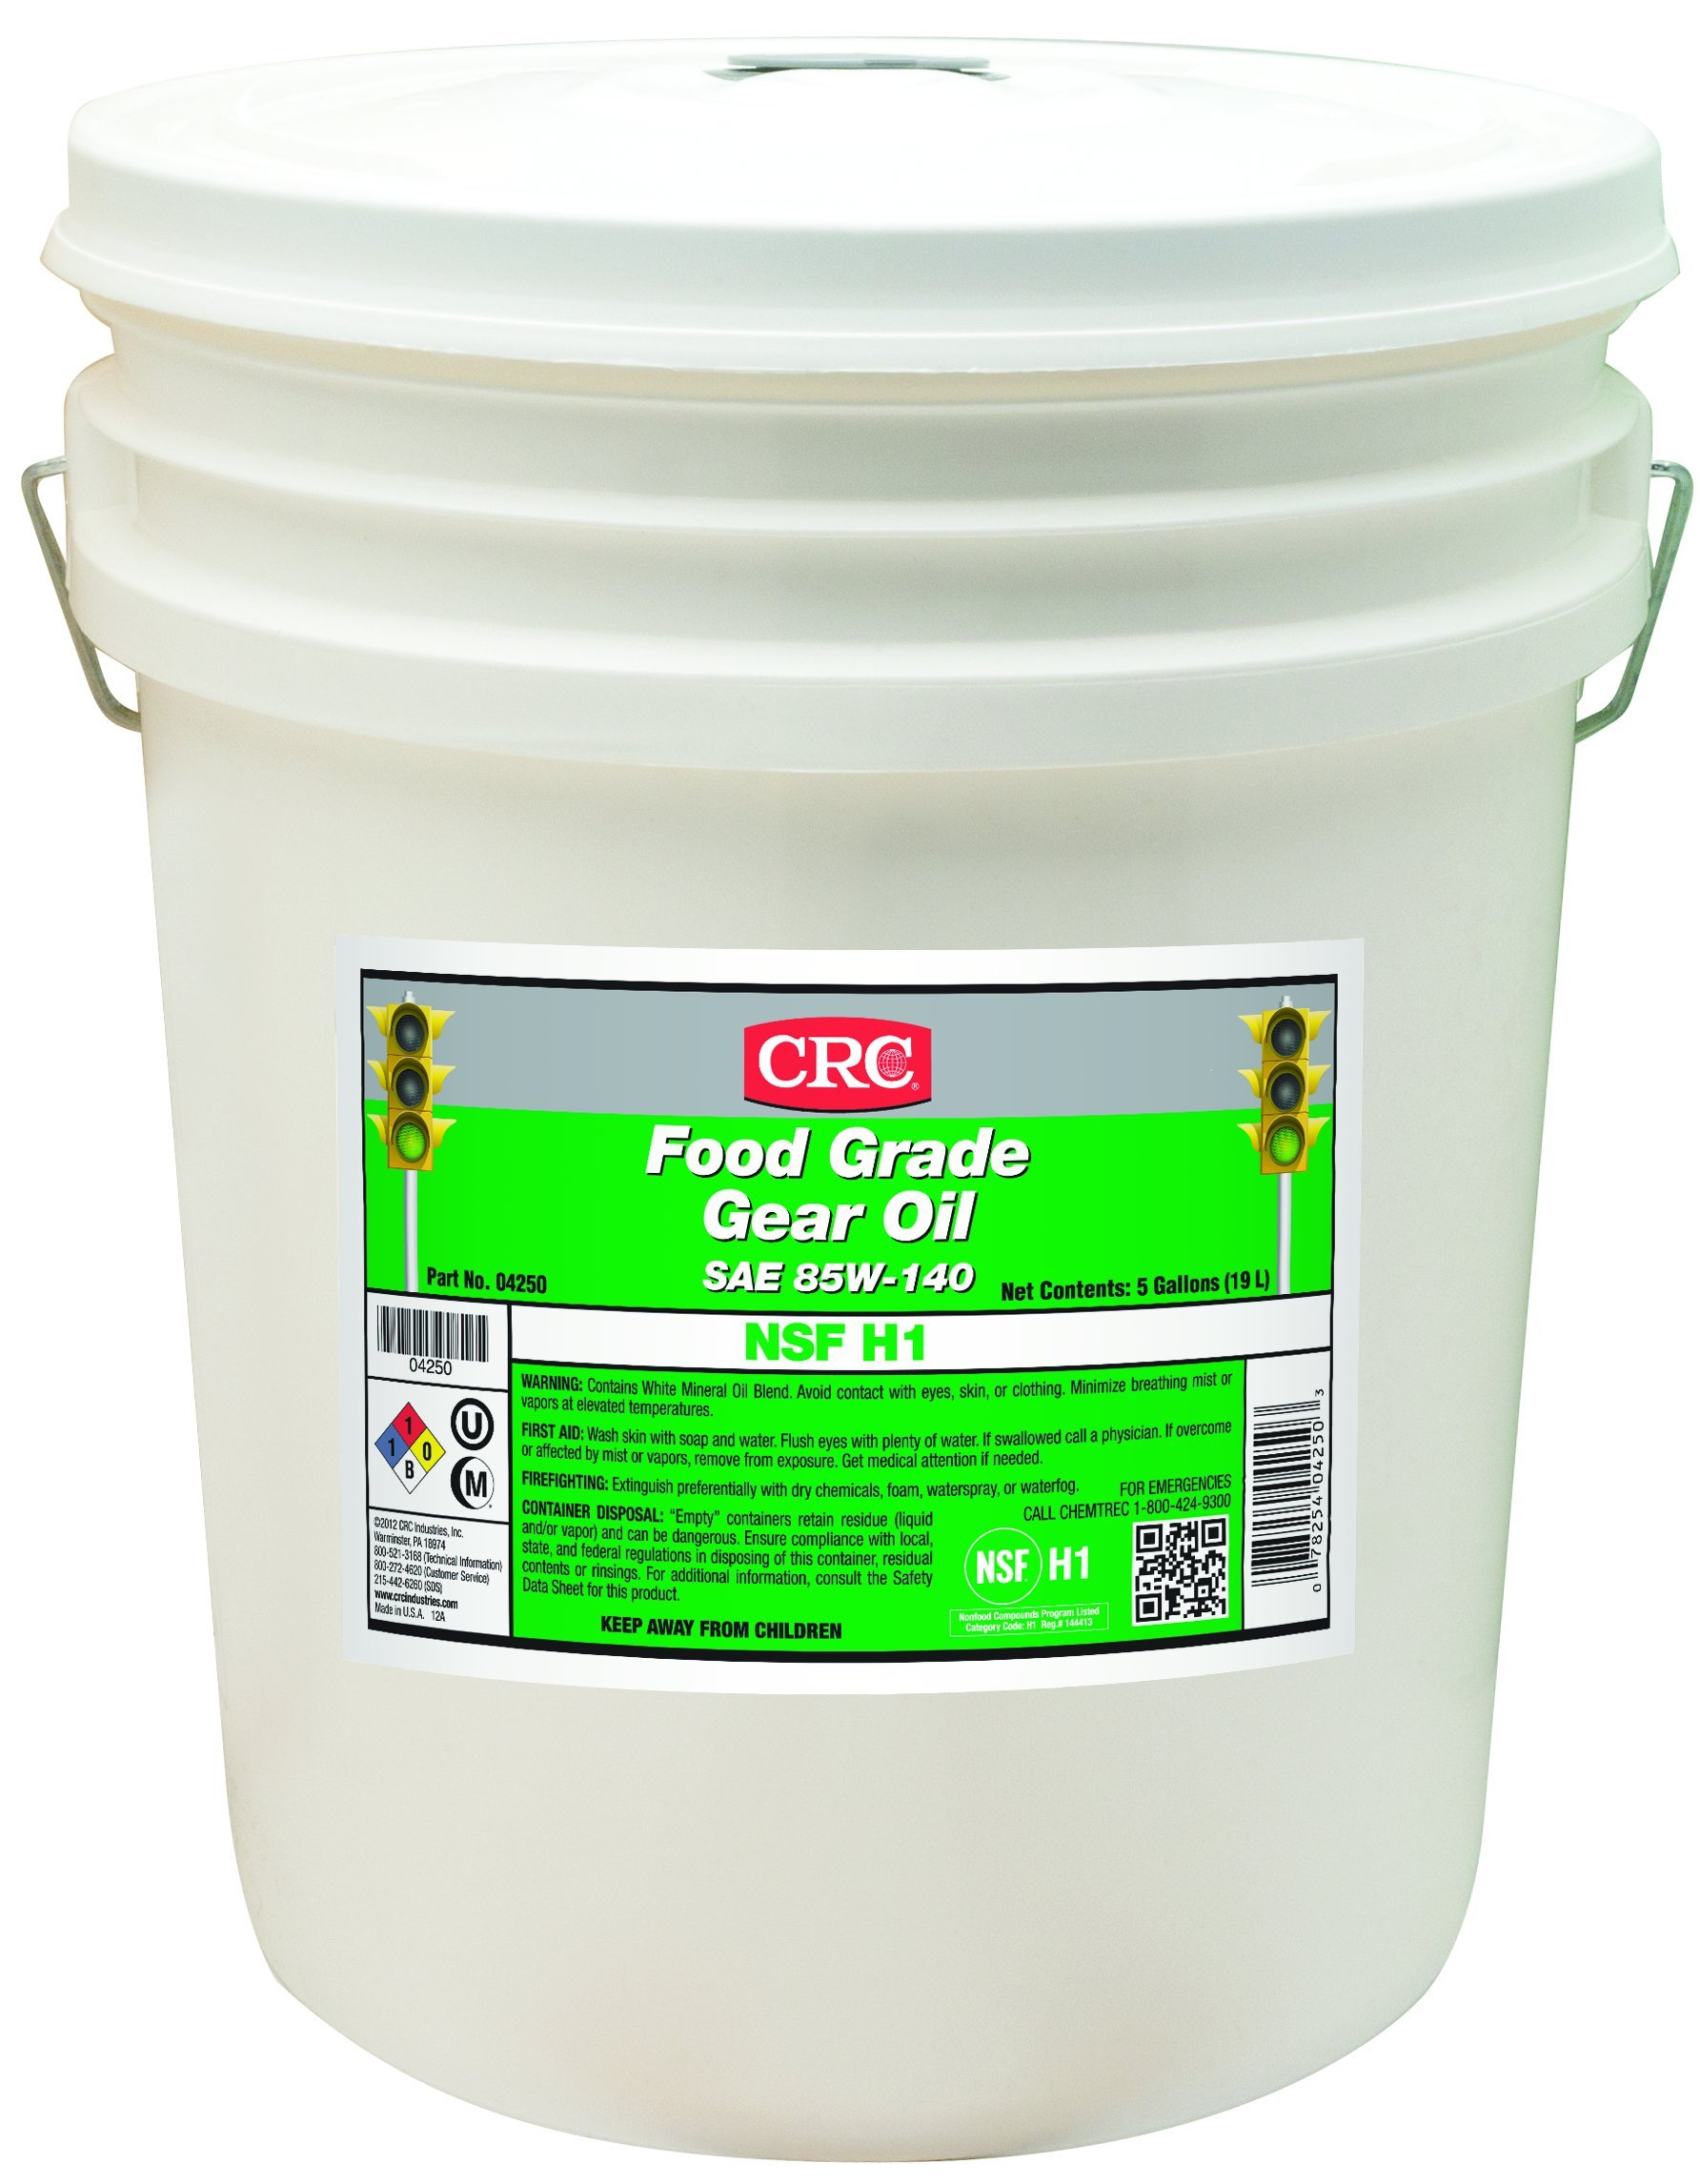 CRC Food Grade Gear Oil, 15 to 375 Degrees Temperature, 5 Gallon Pail, Clear, SAE 85W-140